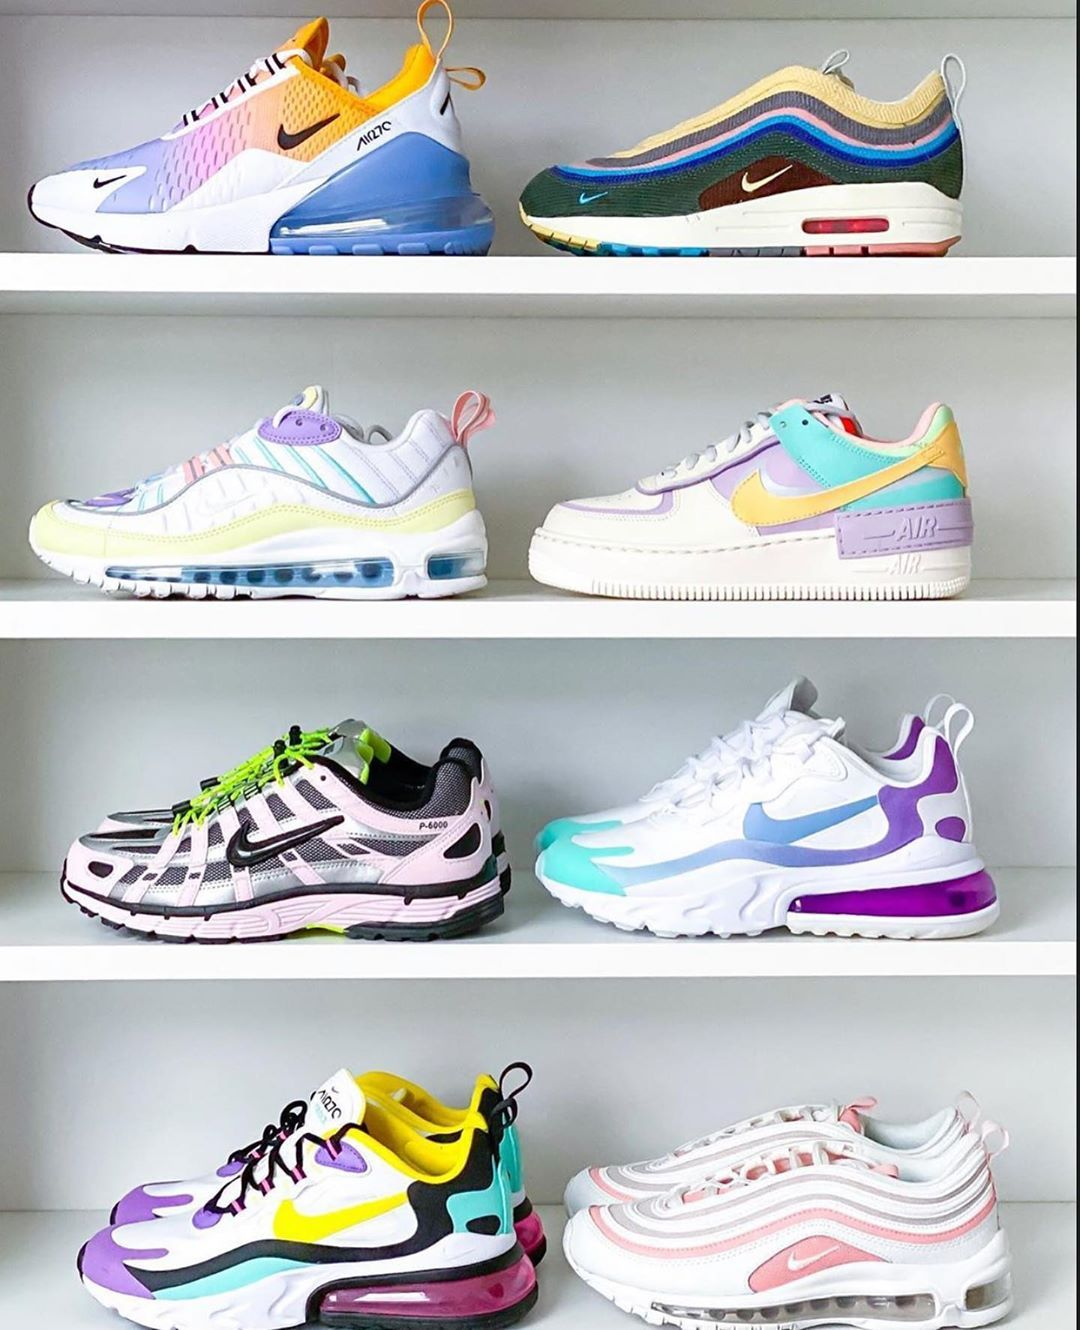 Black Friday All The Sneakers You Want And More On Our Website Www Zapasgo Co Babesnsneakers Balenciaga In 2020 Popular Nike Shoes Hype Shoes Kicks Shoes